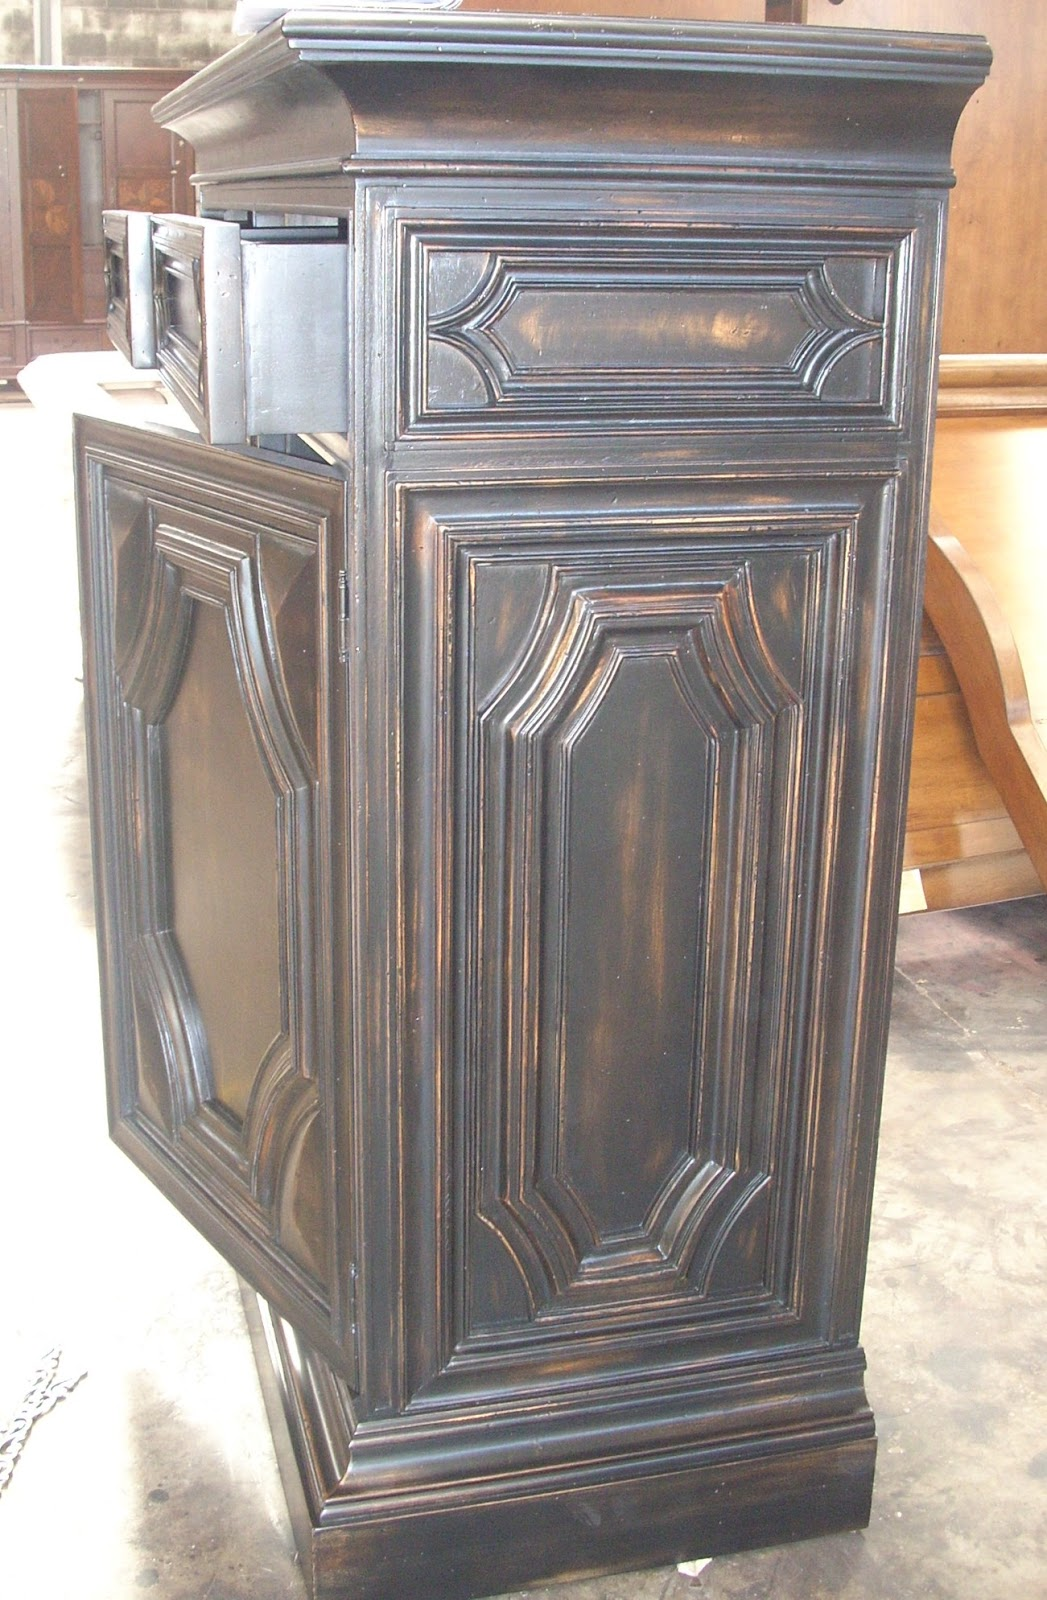 The antique black paint finish